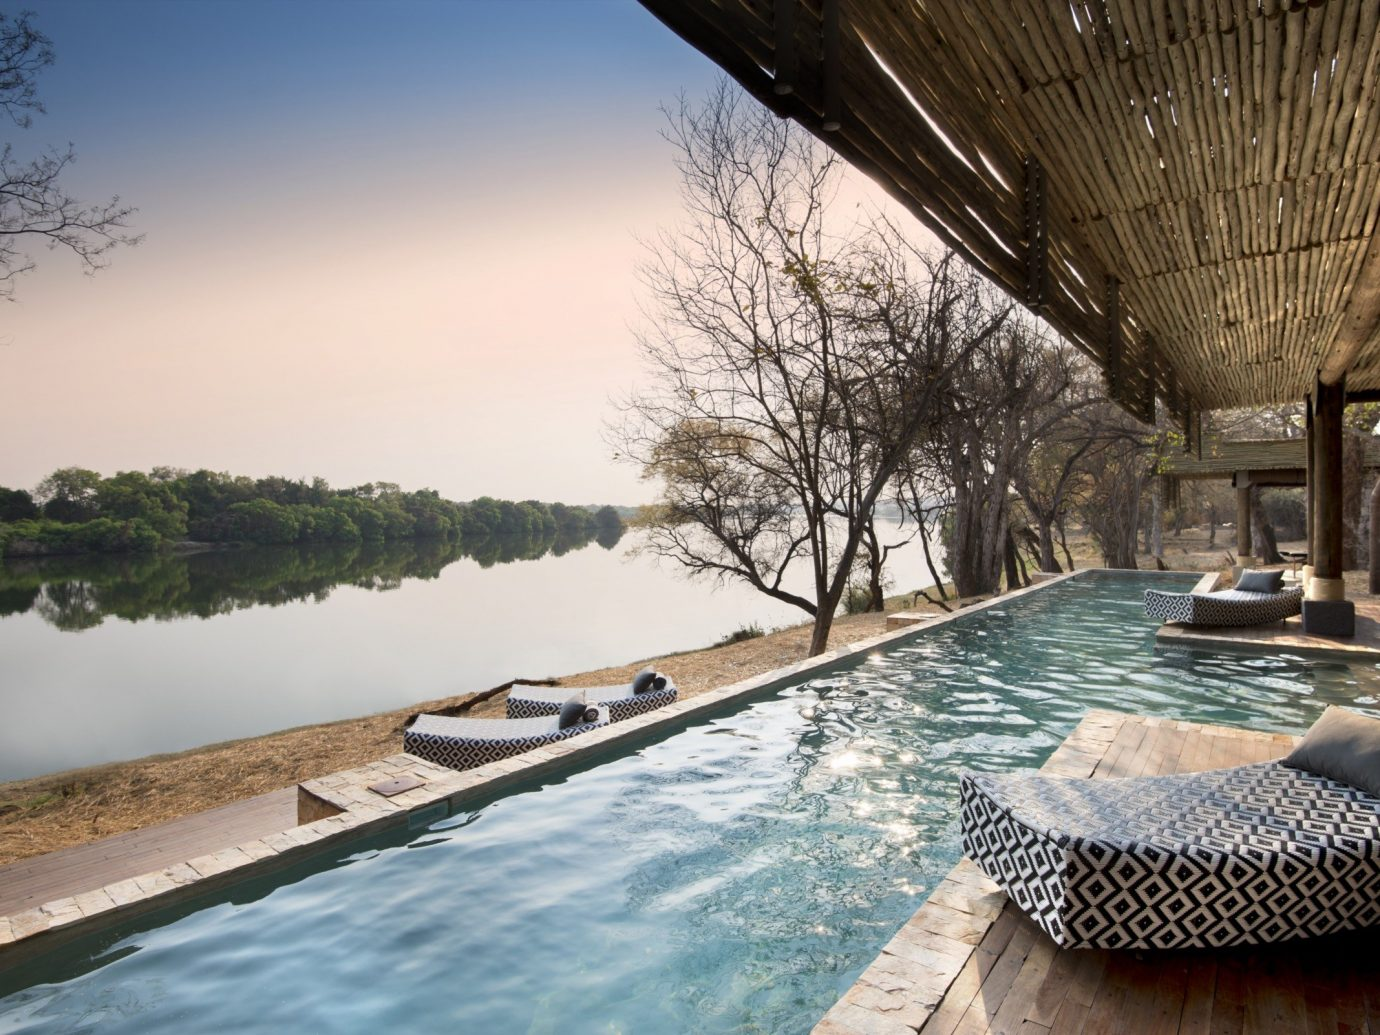 Luxury Travel Trip Ideas sky water outdoor leisure swimming pool vacation estate morning reflection Sea